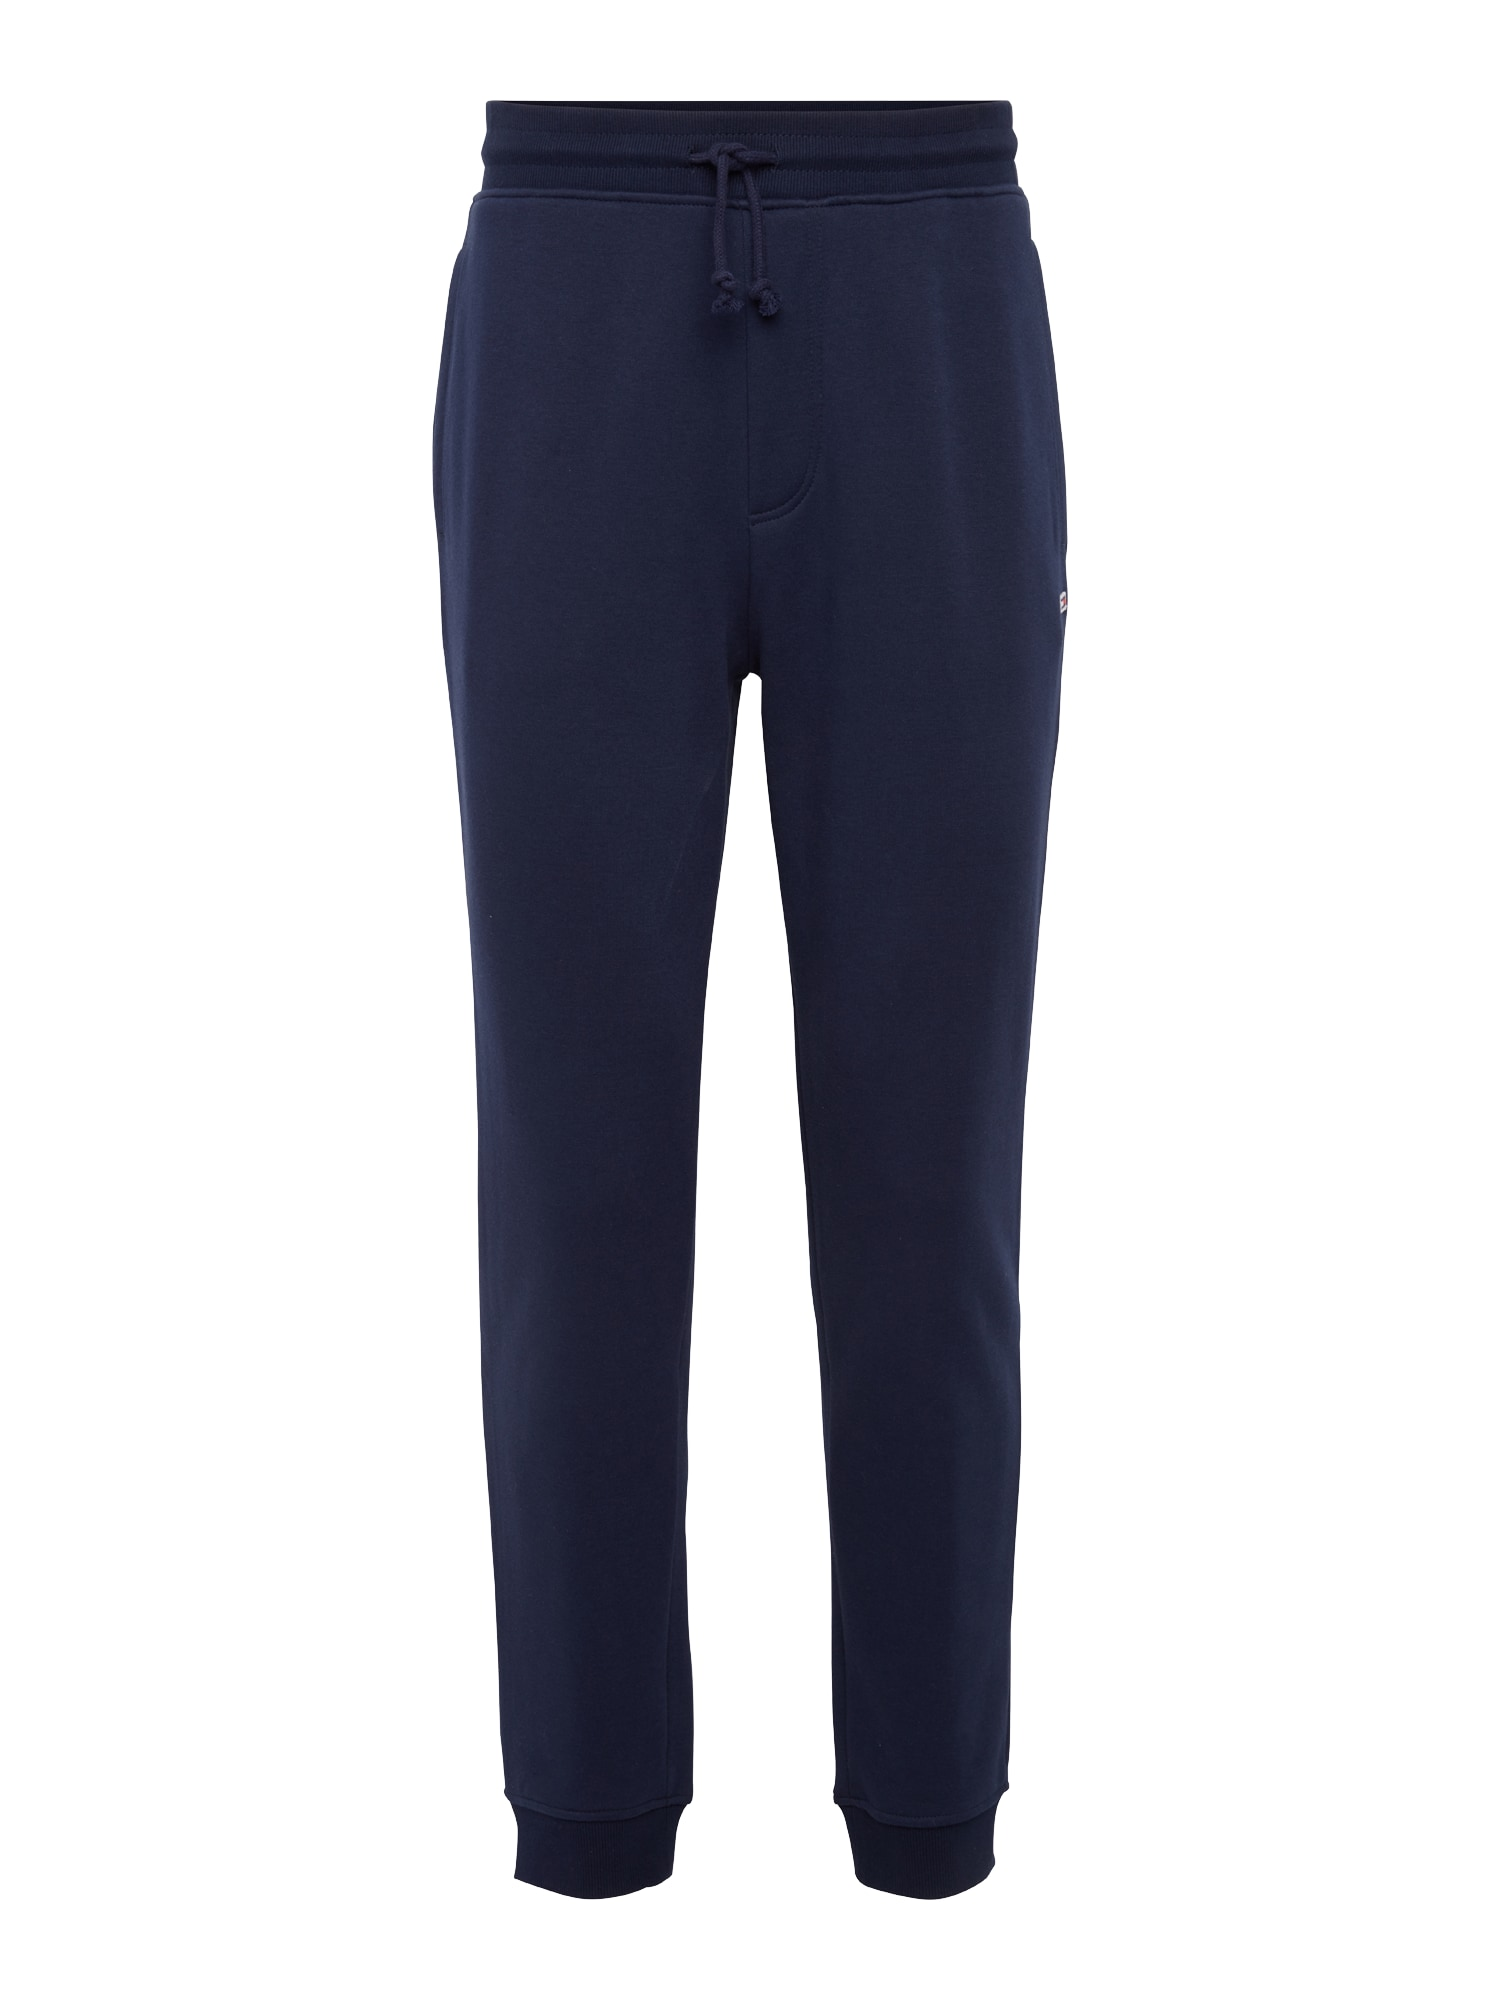 Tommy Jeans, Heren Broek 'TJM TOMMY CLASSICS SWEATPANT', donkerblauw